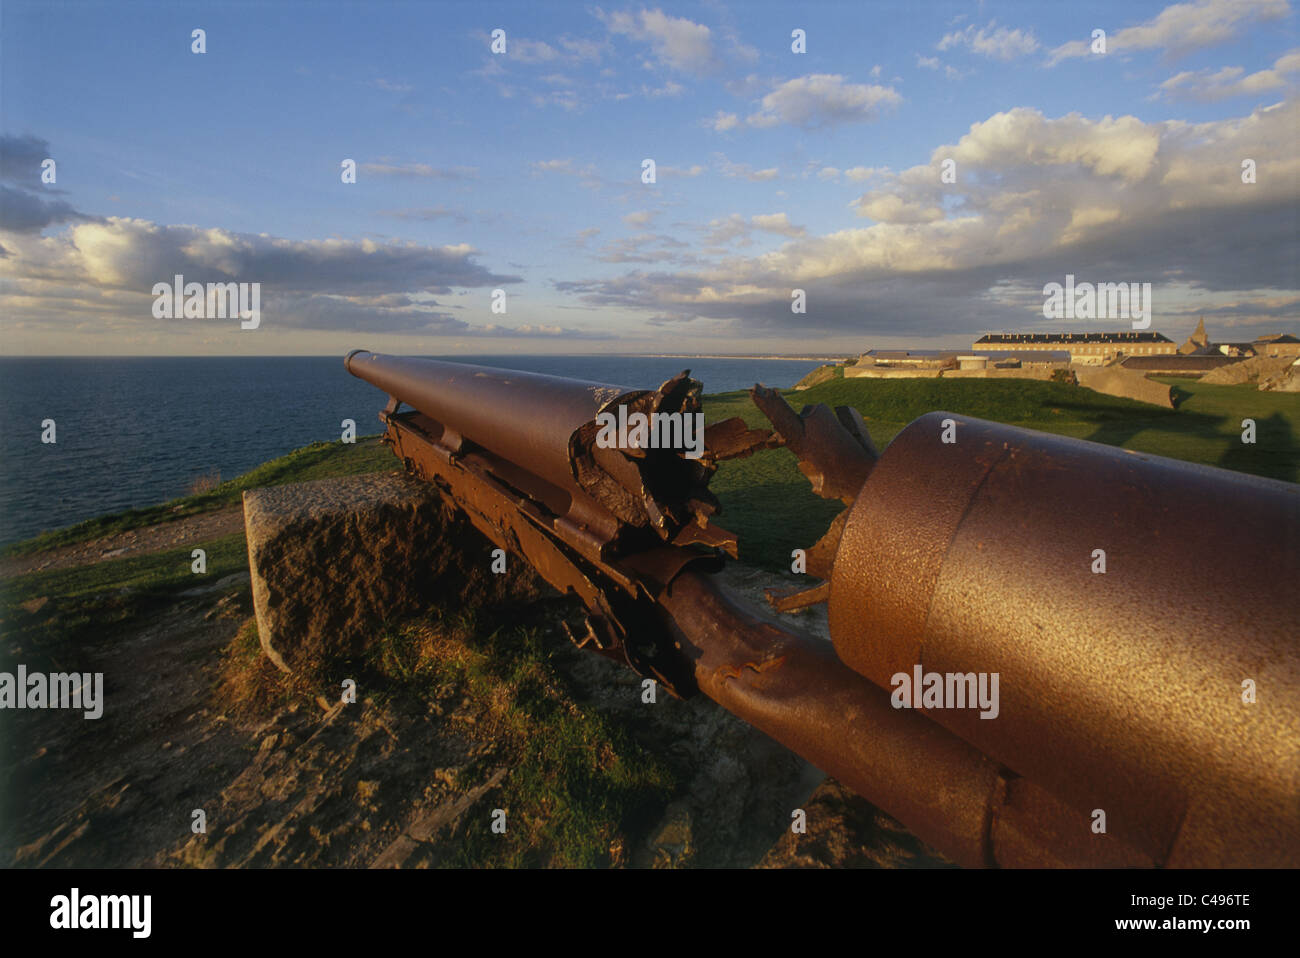 Photograph of an old world war 2 Cannon on the cliffs of Normandy - Stock Image